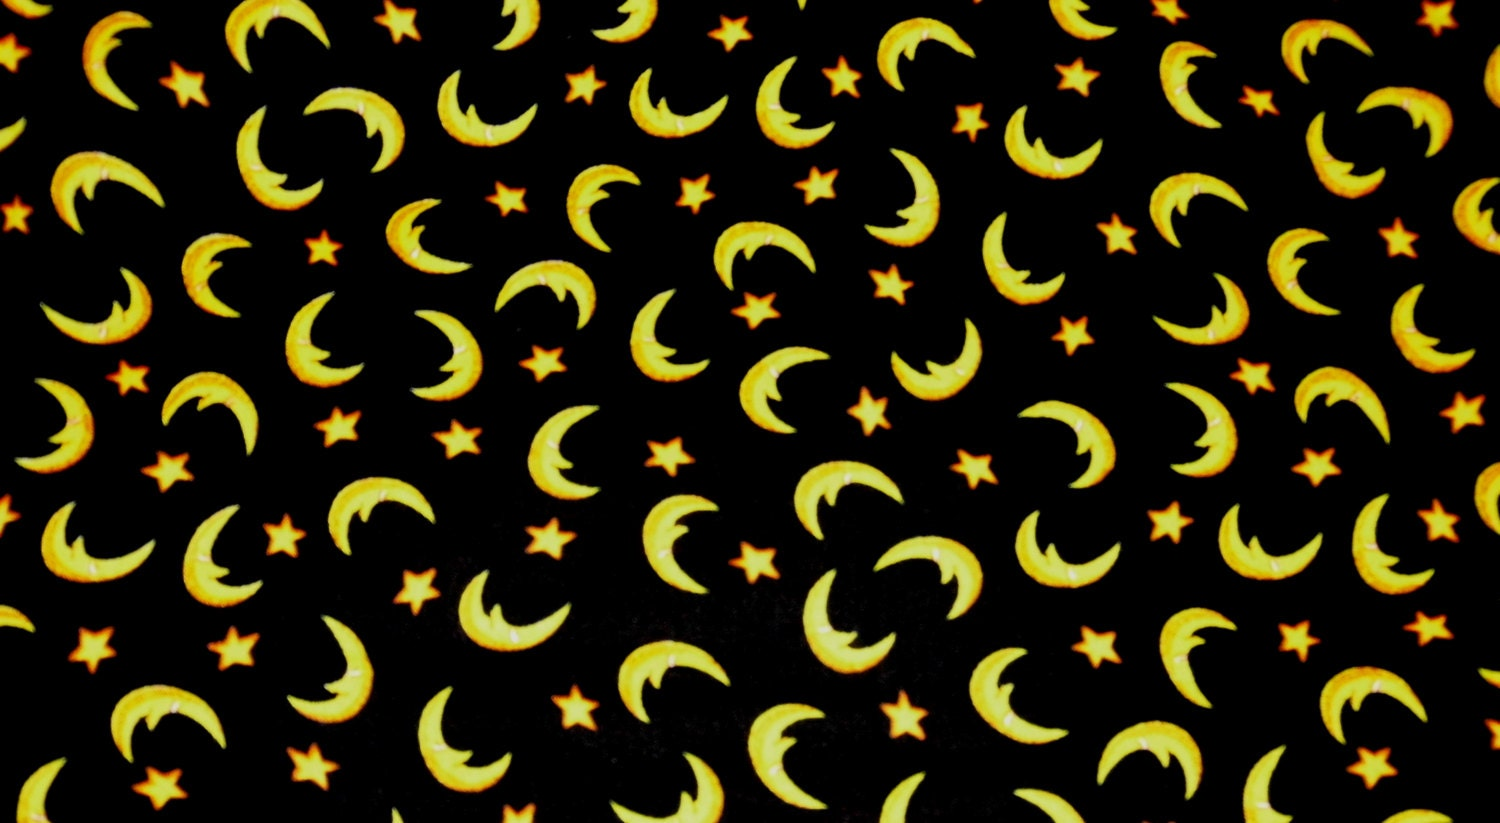 Moon Fabric - Black Fabric - Black And Yellow - Moon - Star Fabric ...